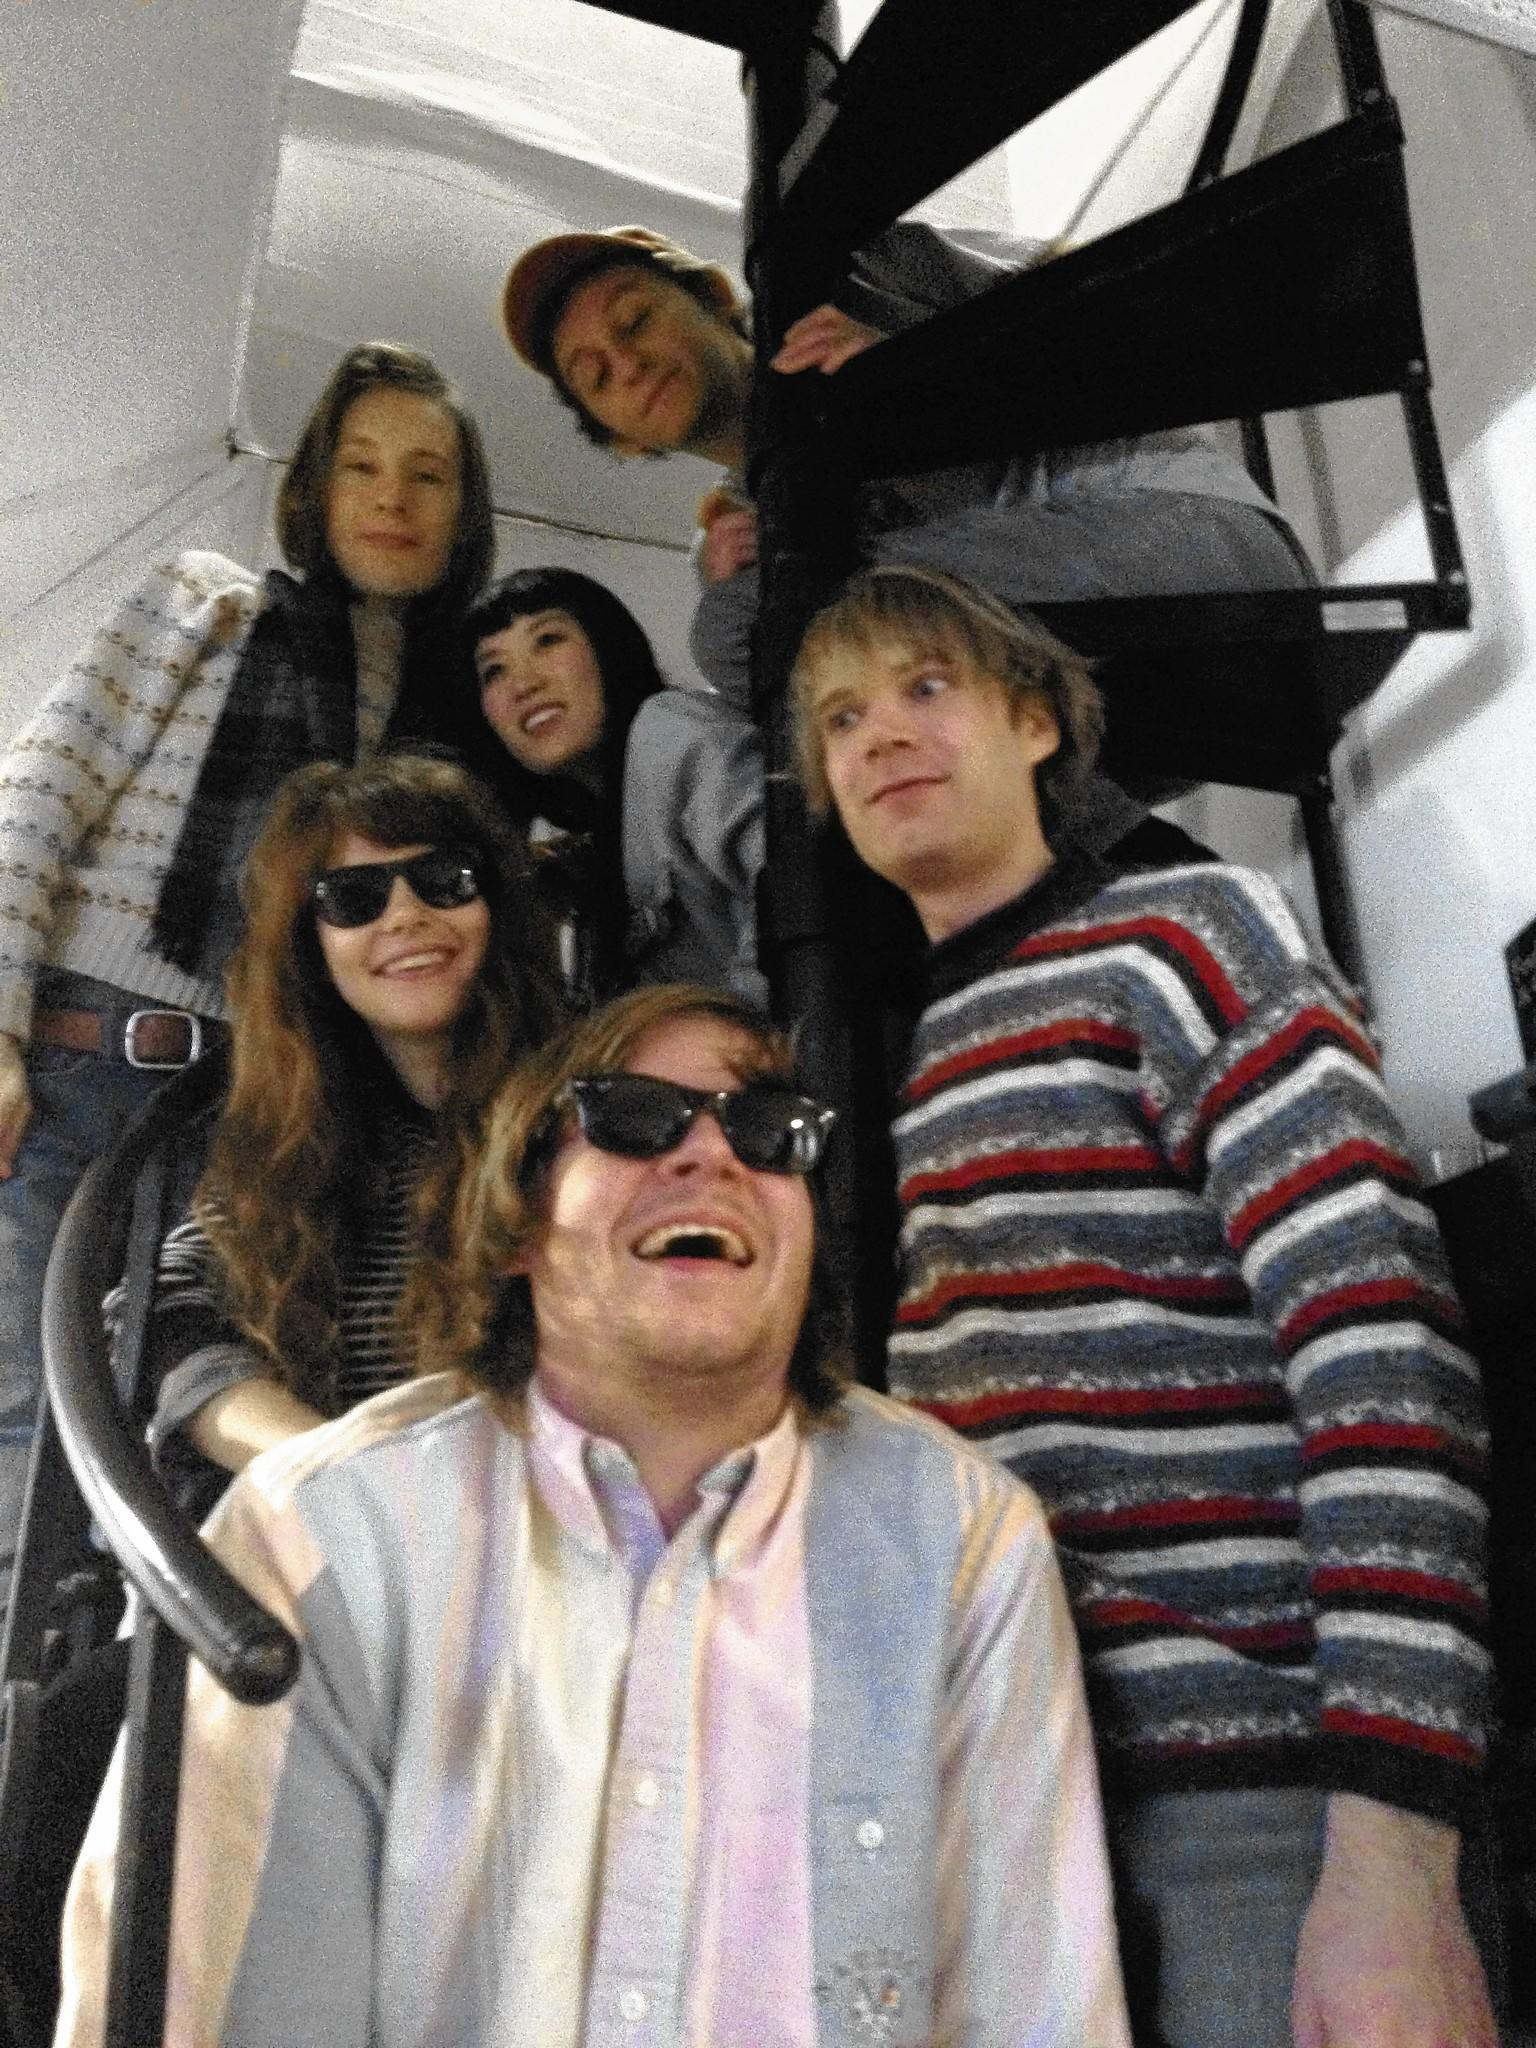 The Lemons with (stage names, clockwise from Top Right) John Lemon, Chris Twist, Juicy James, Kelly Lamone, Billy Sour and Kimmy Slice.